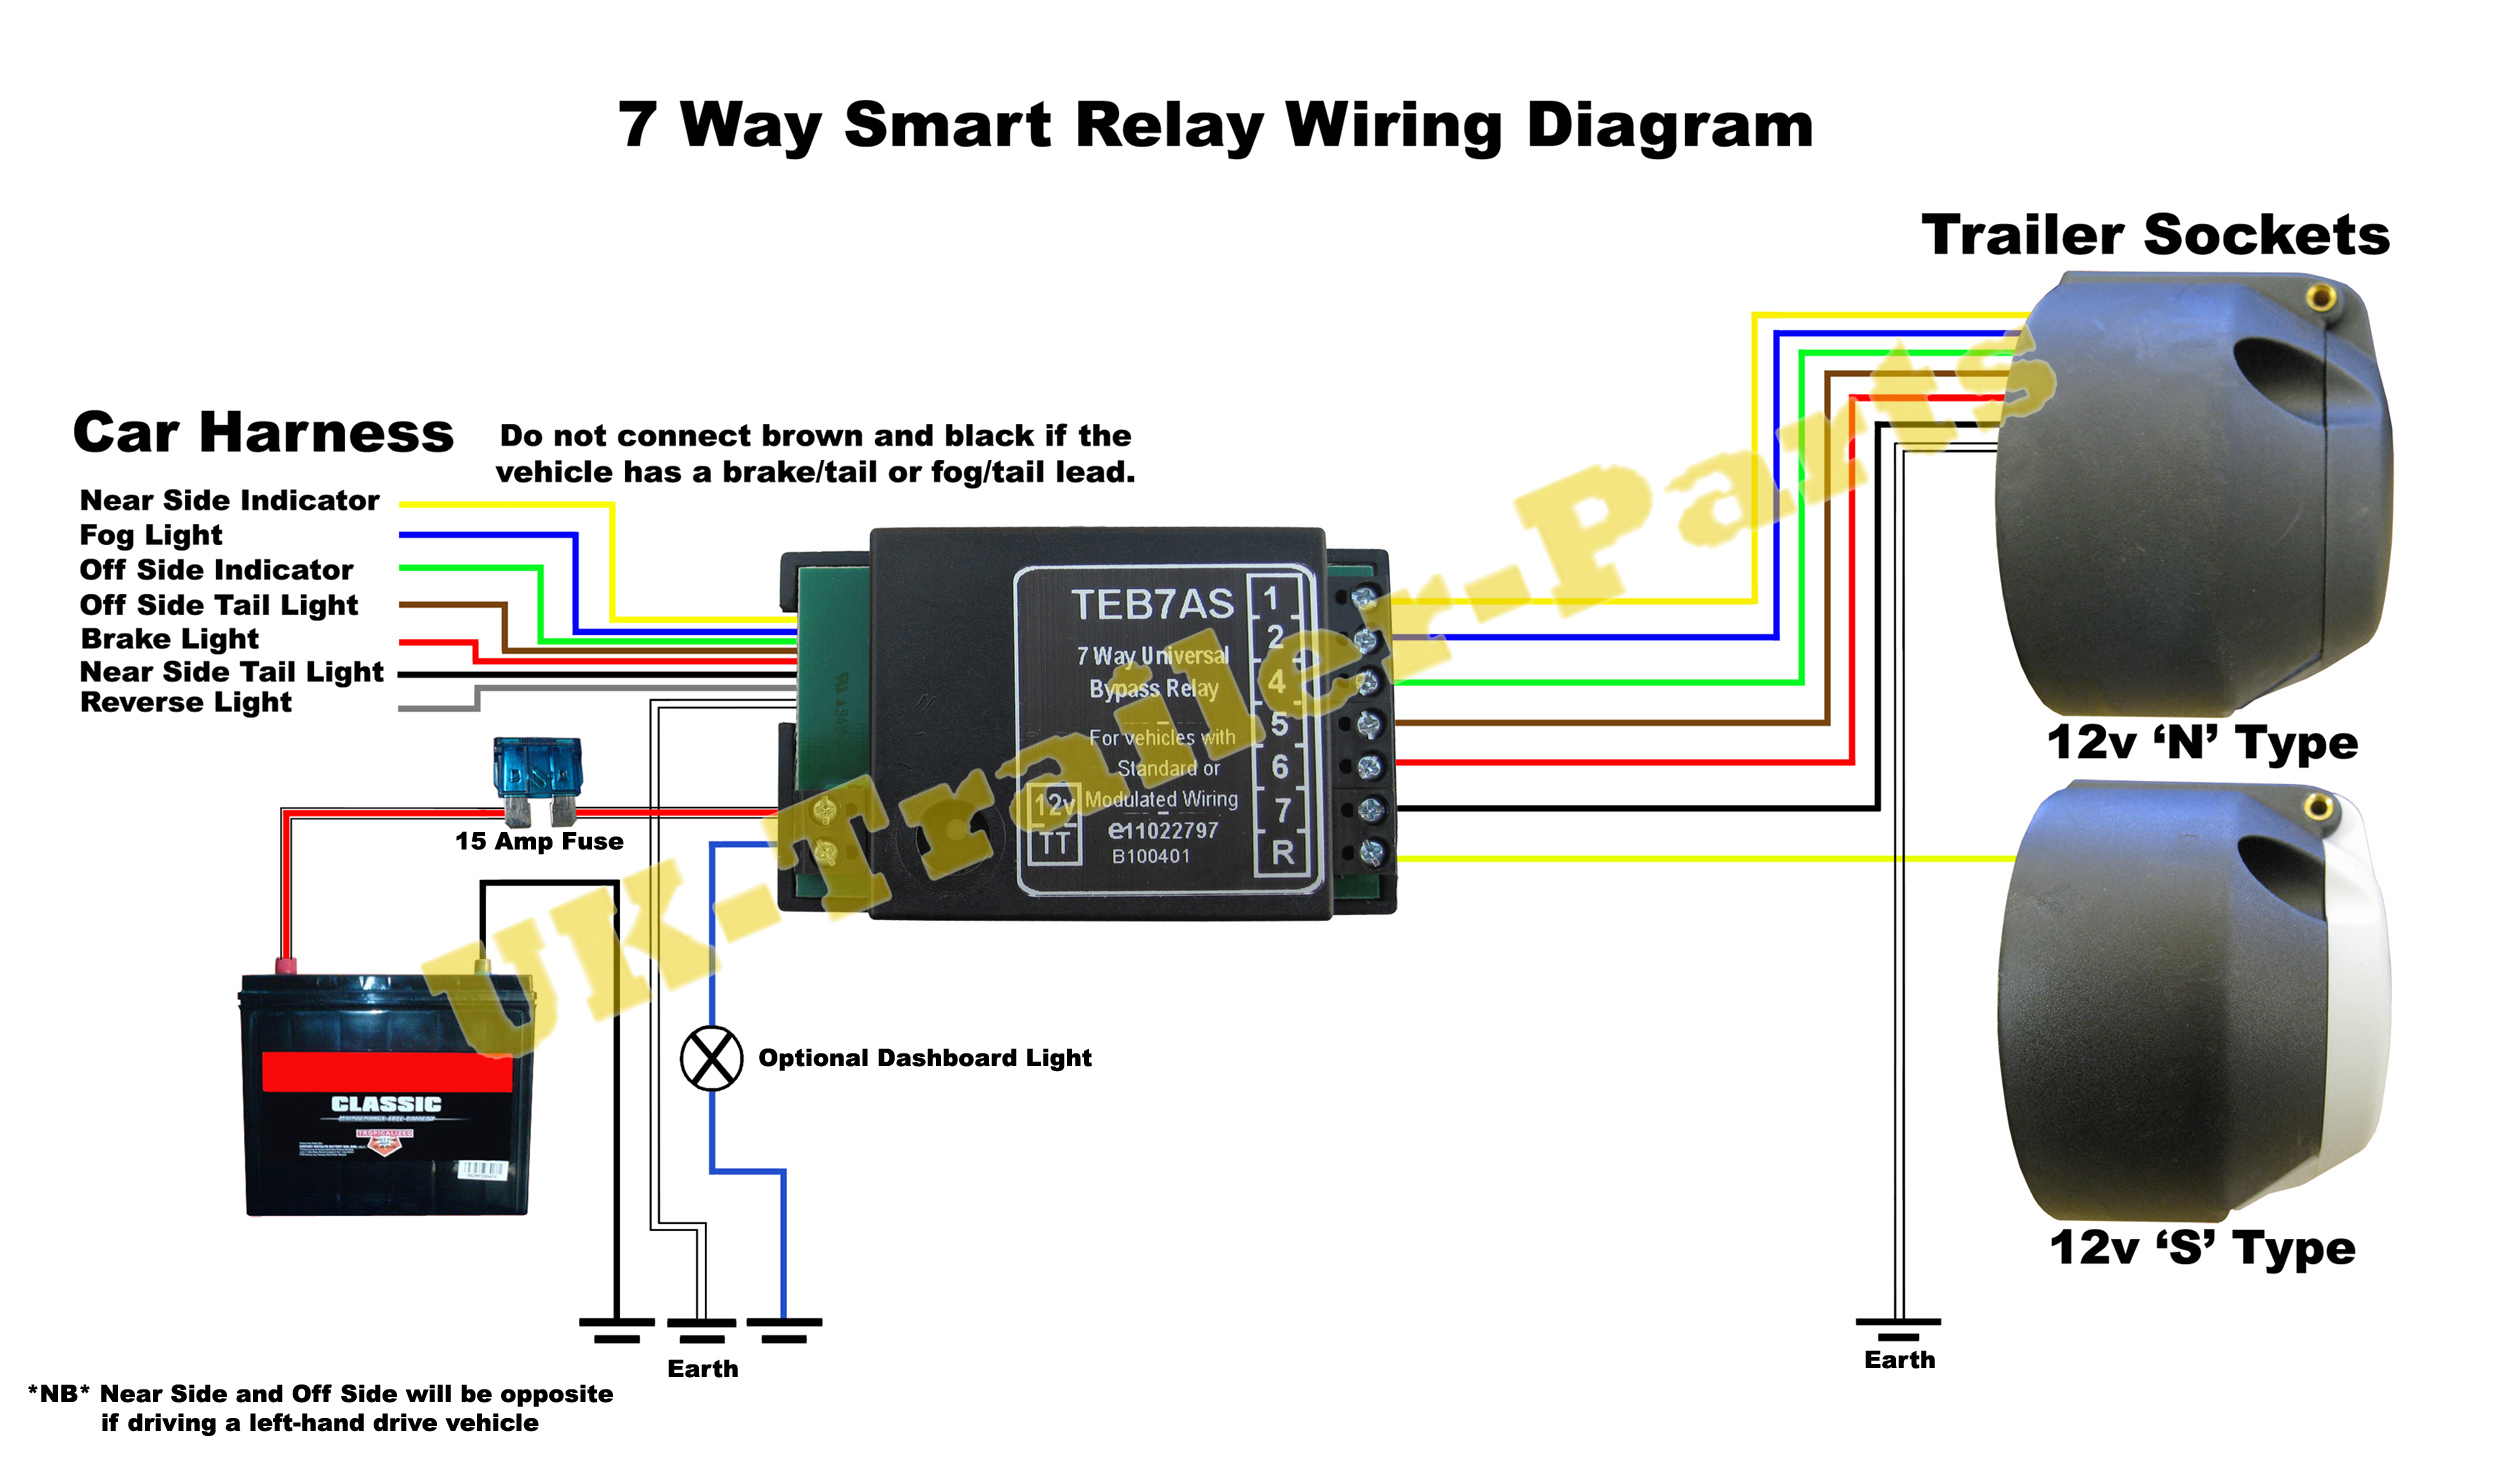 smart relay wiring diagram2 skoda yeti towbar wiring diagram skoda 13 \u2022 wiring diagrams j belimo fslf120 us wiring diagram at soozxer.org